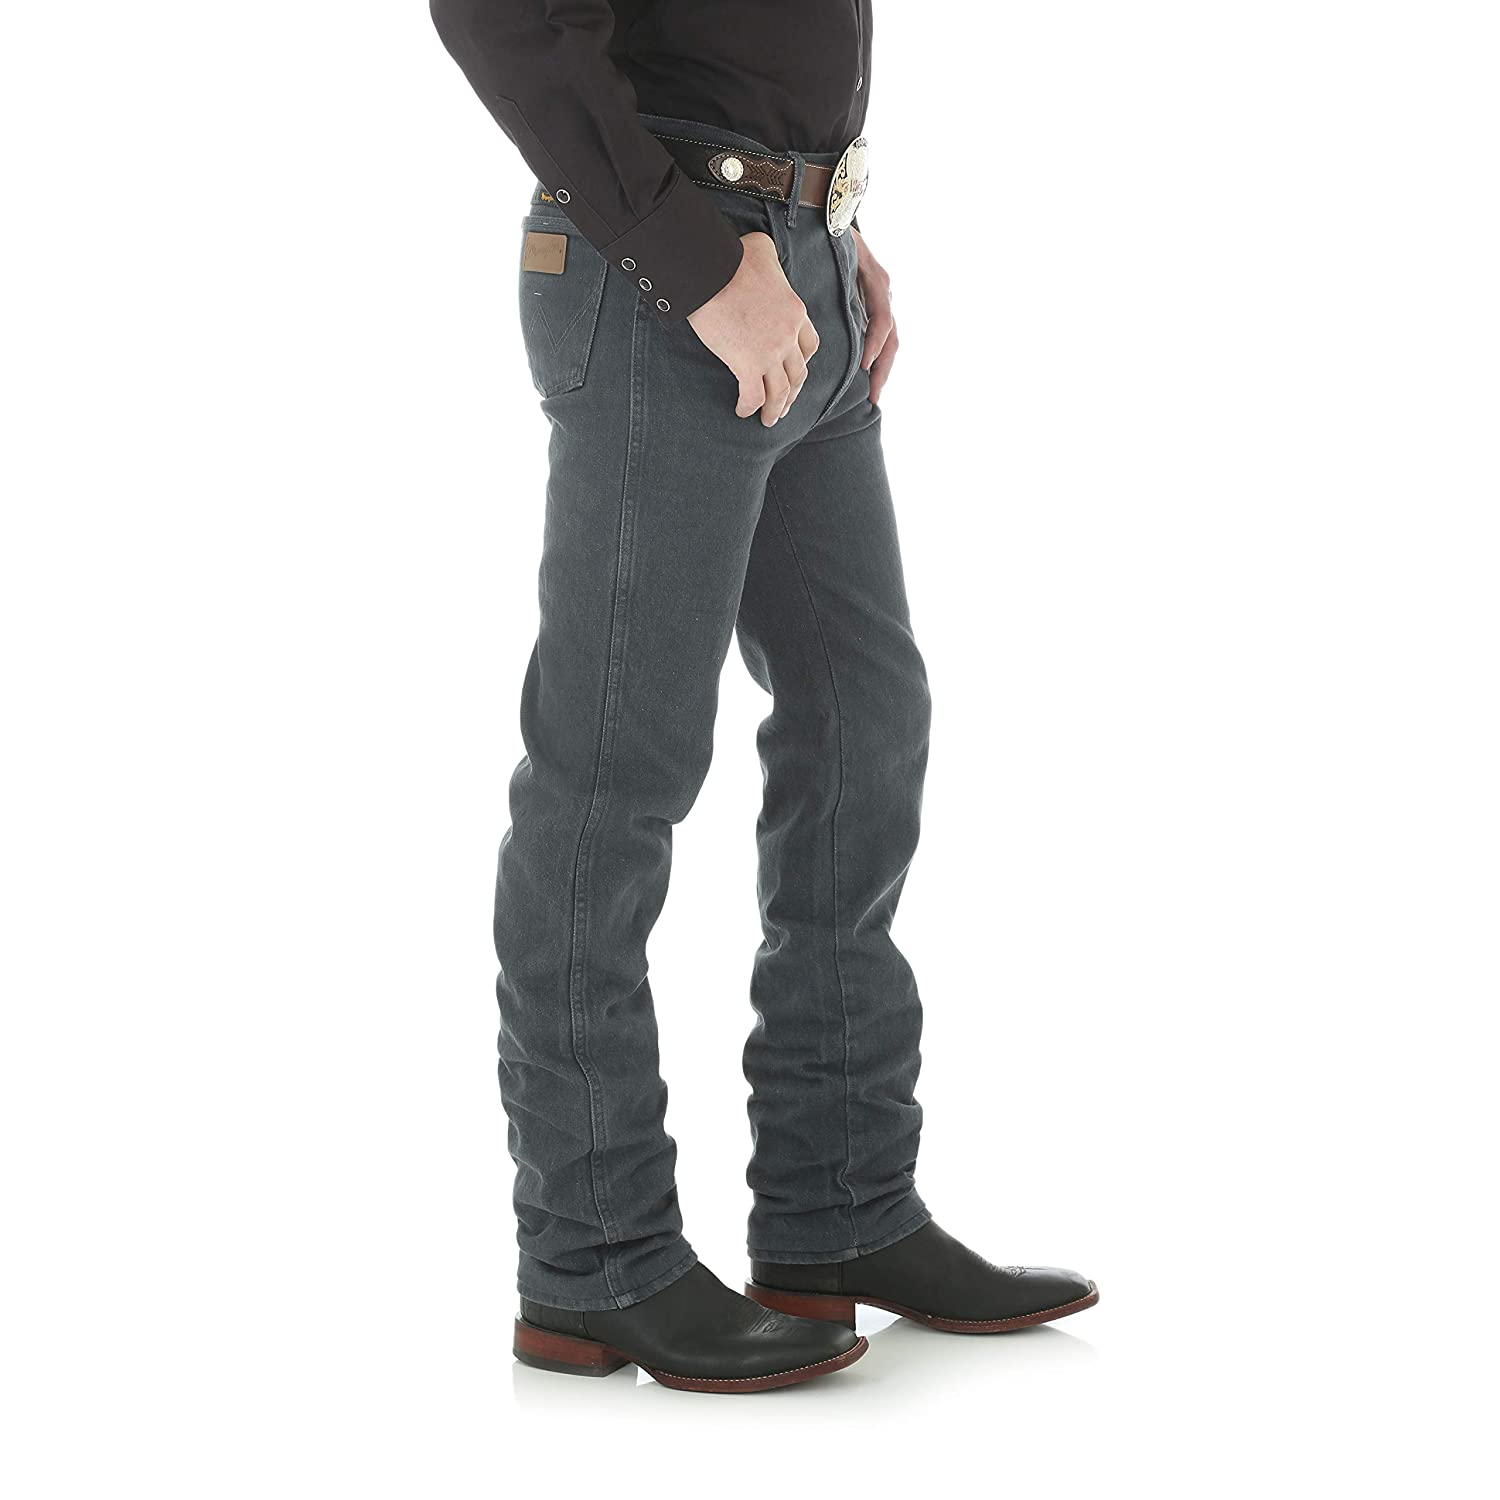 Wrangler Mens Pants